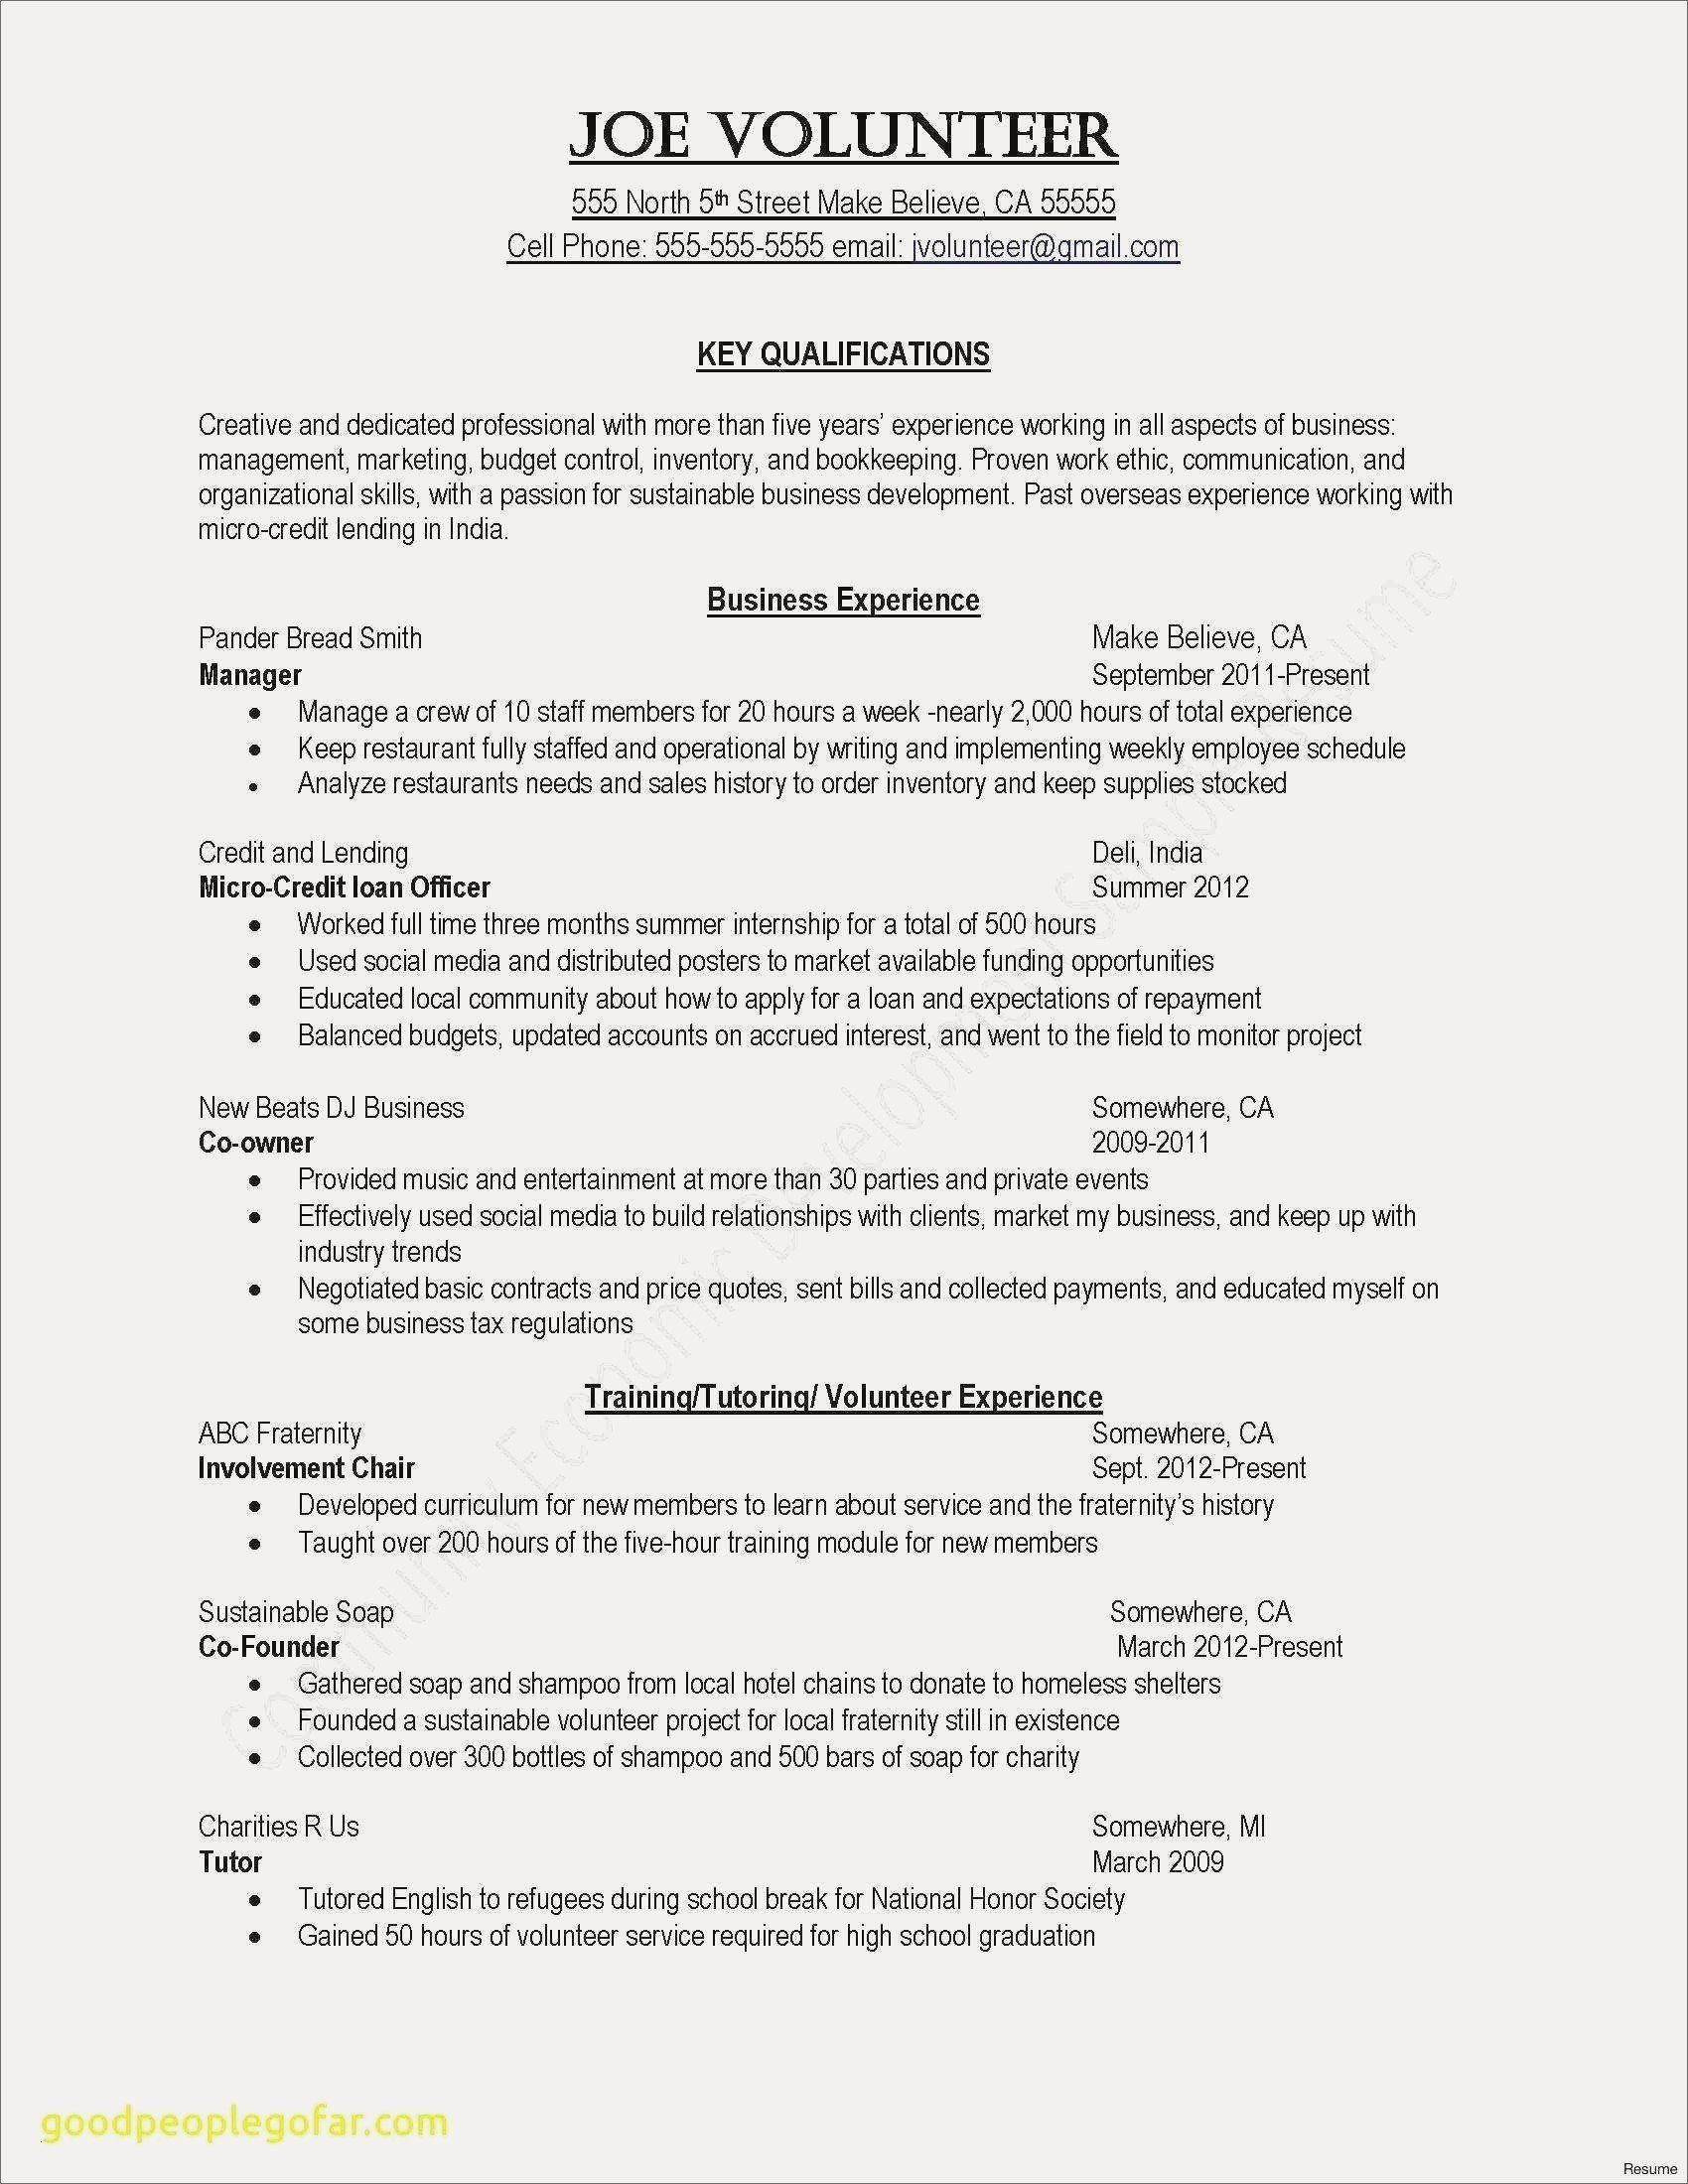 What Type Of Paper For Resume Awesome Elegant Type Paper For Resume In 2020 Education Resume Education Quotes For Teachers Teacher Resume